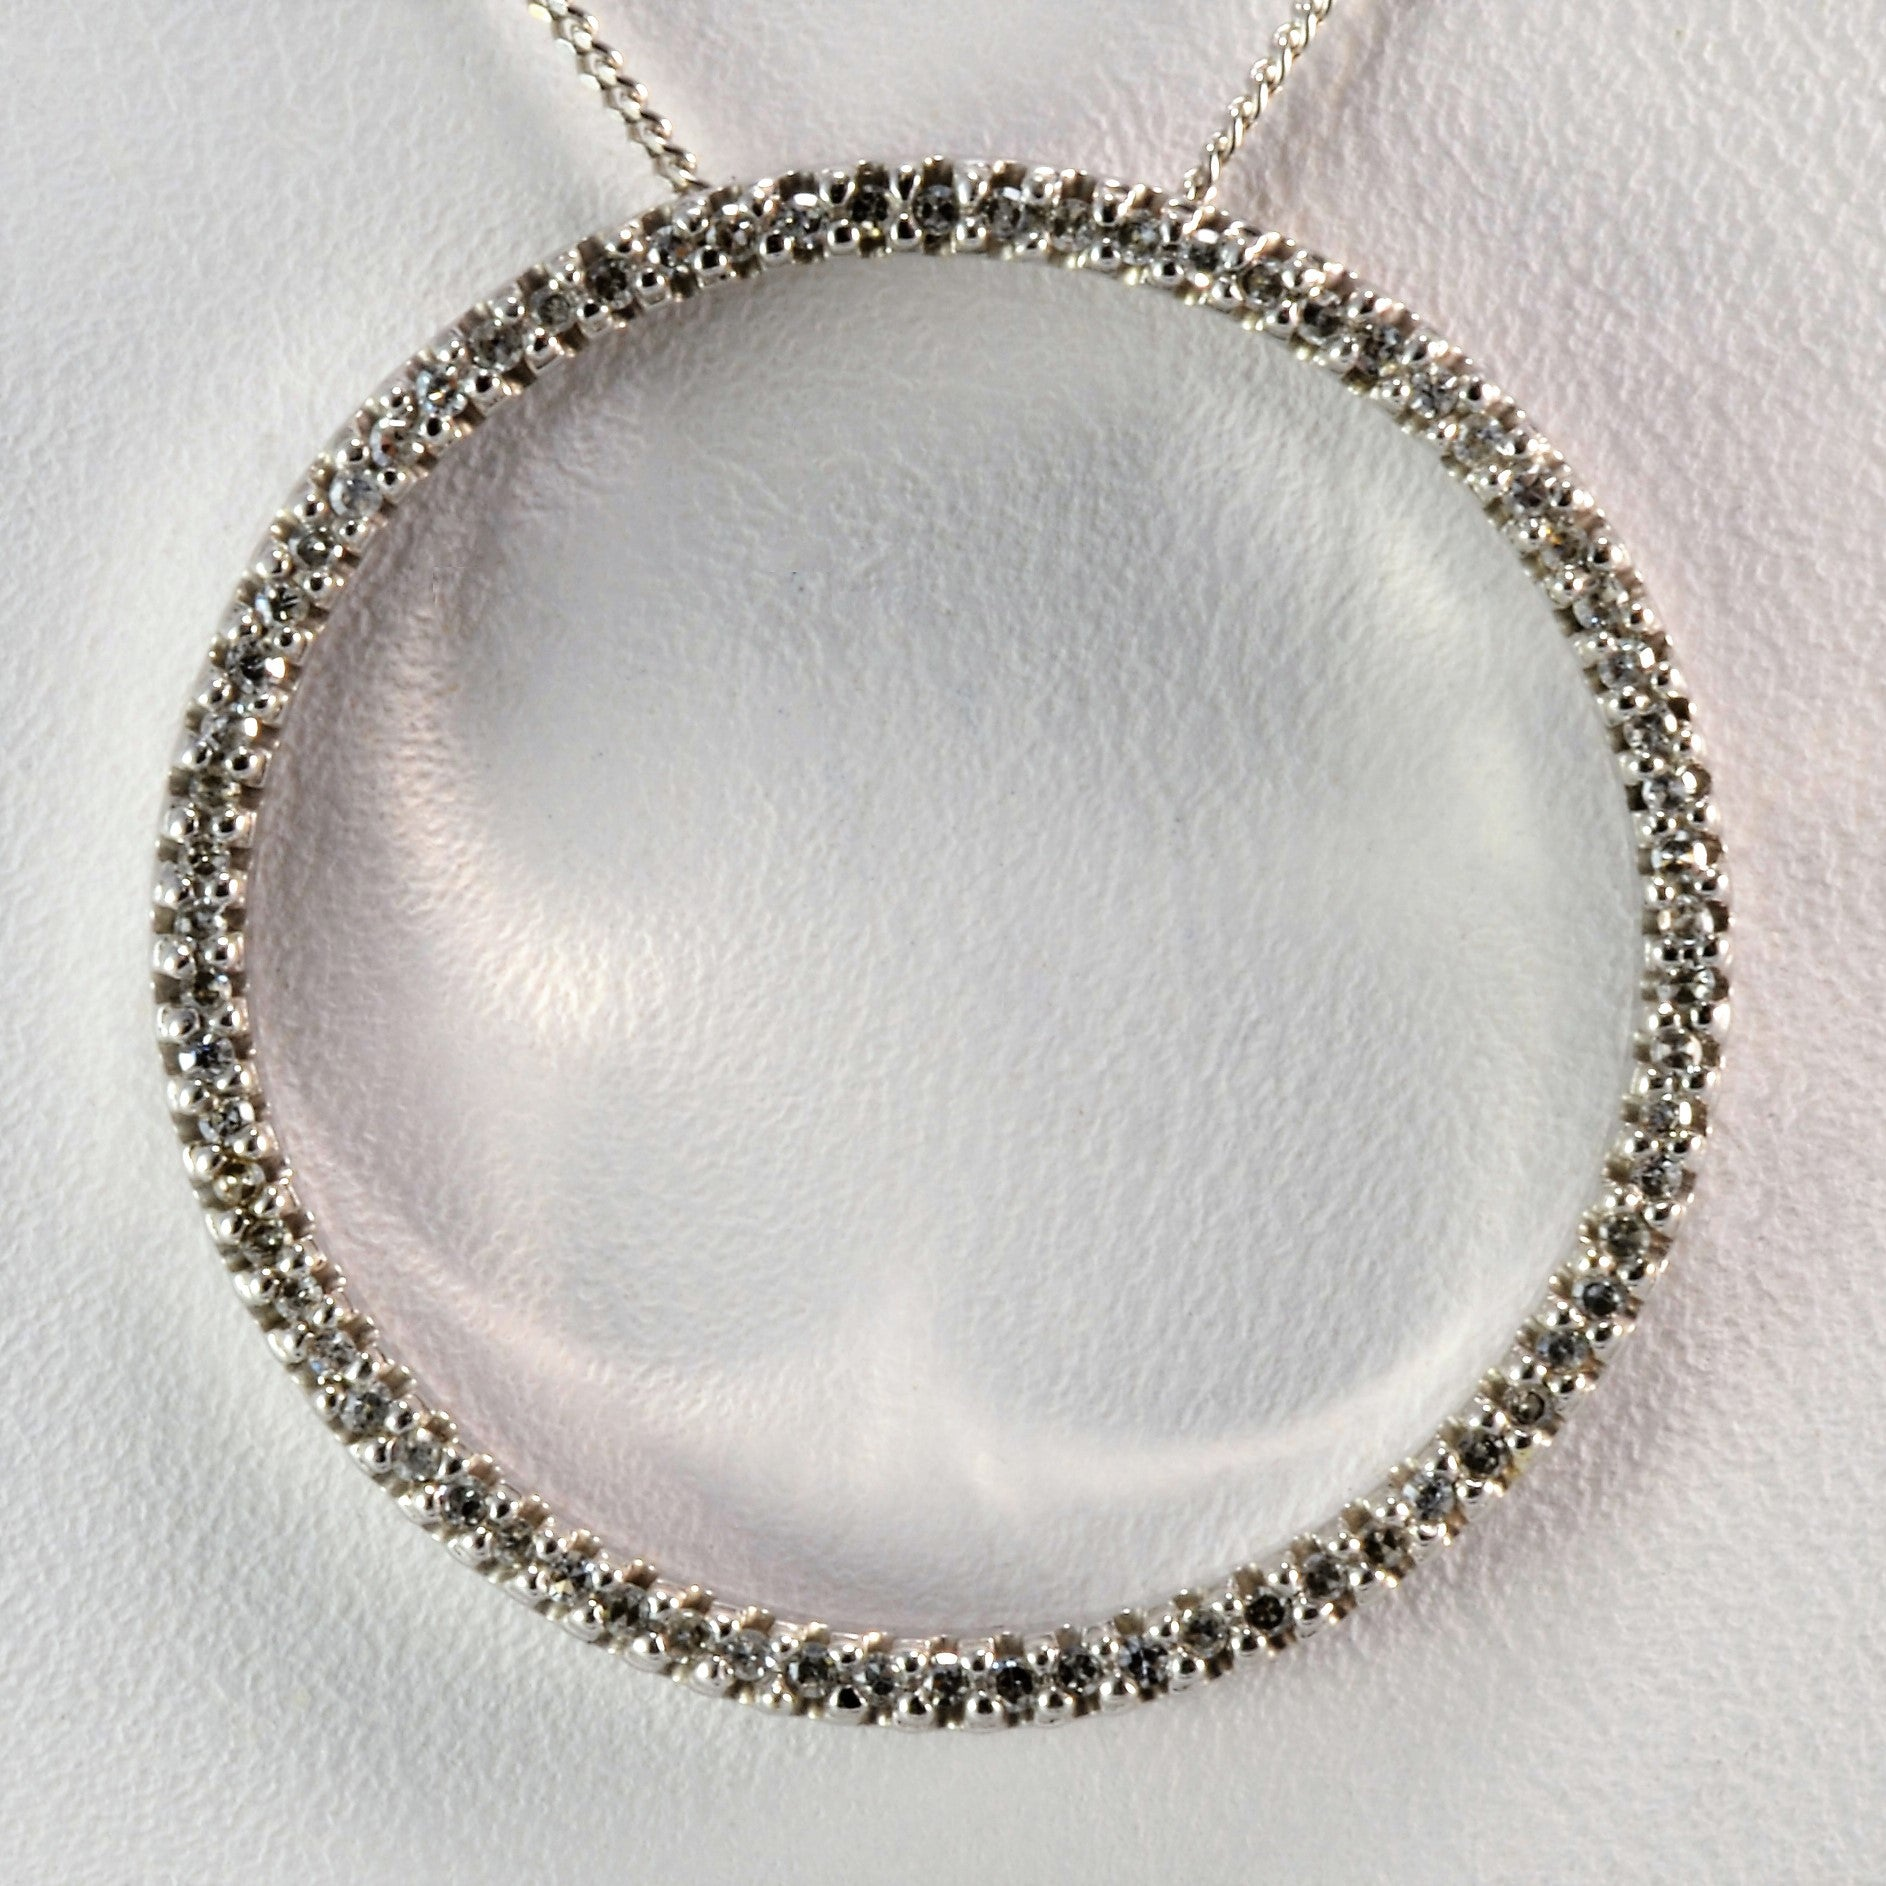 Classic Diamond Circle Necklace | 0.32 ctw, 17"